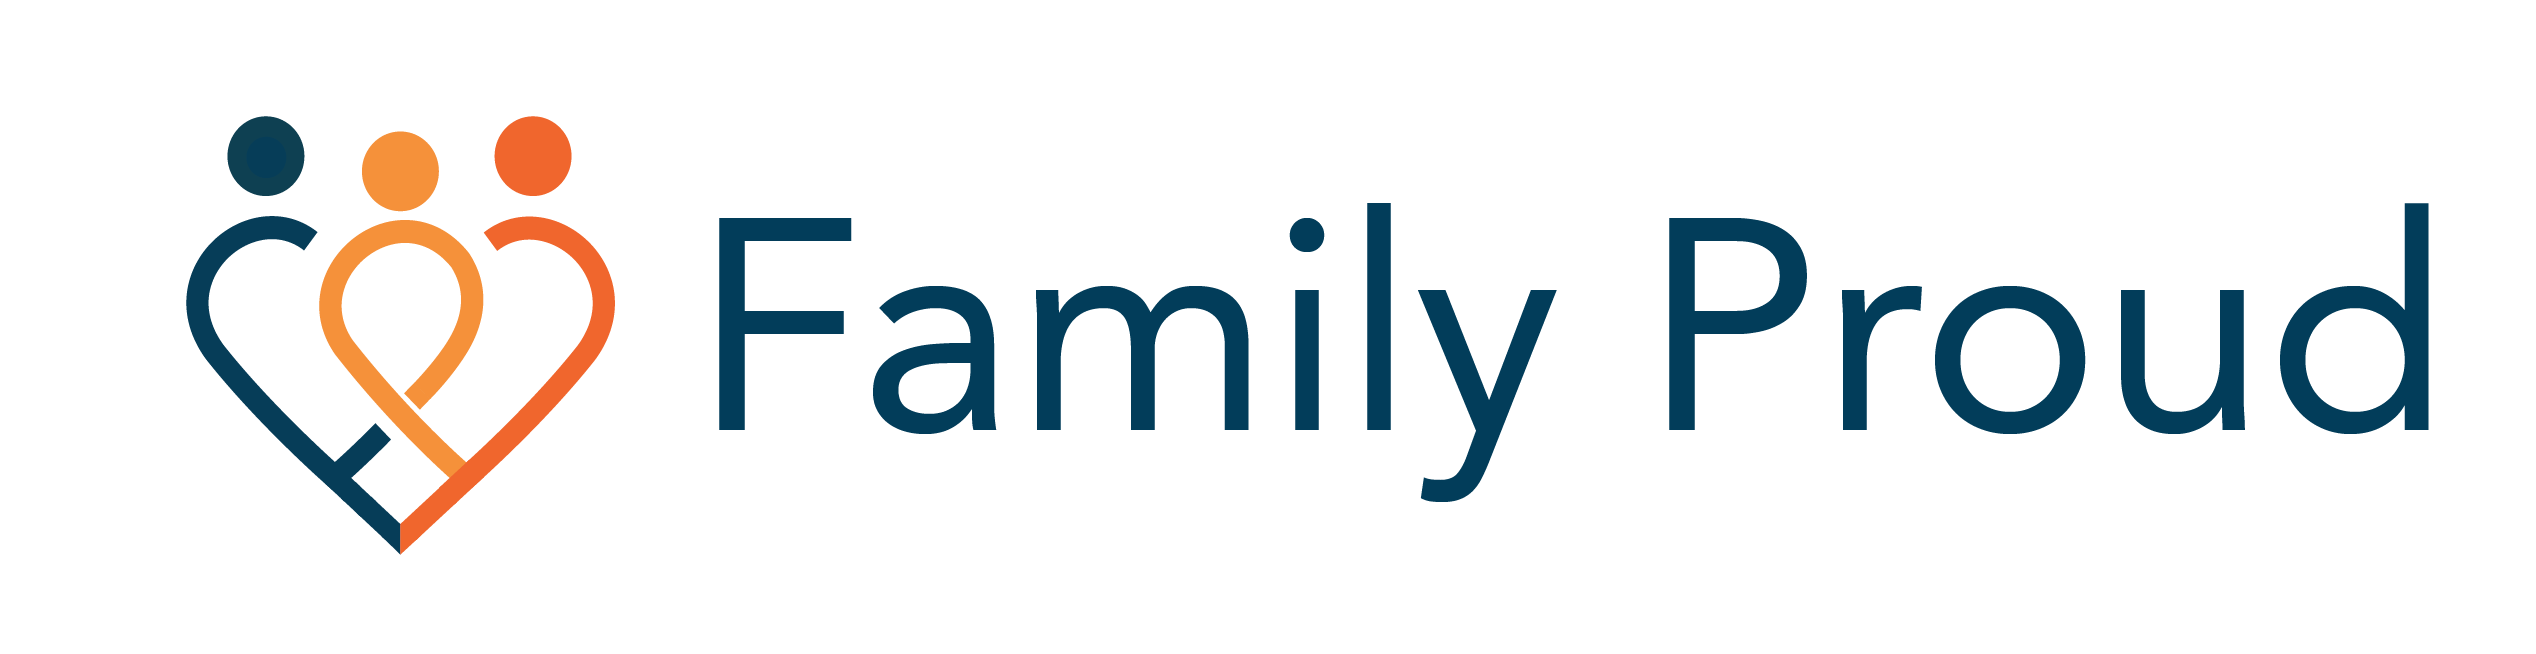 Family Proud Homepage